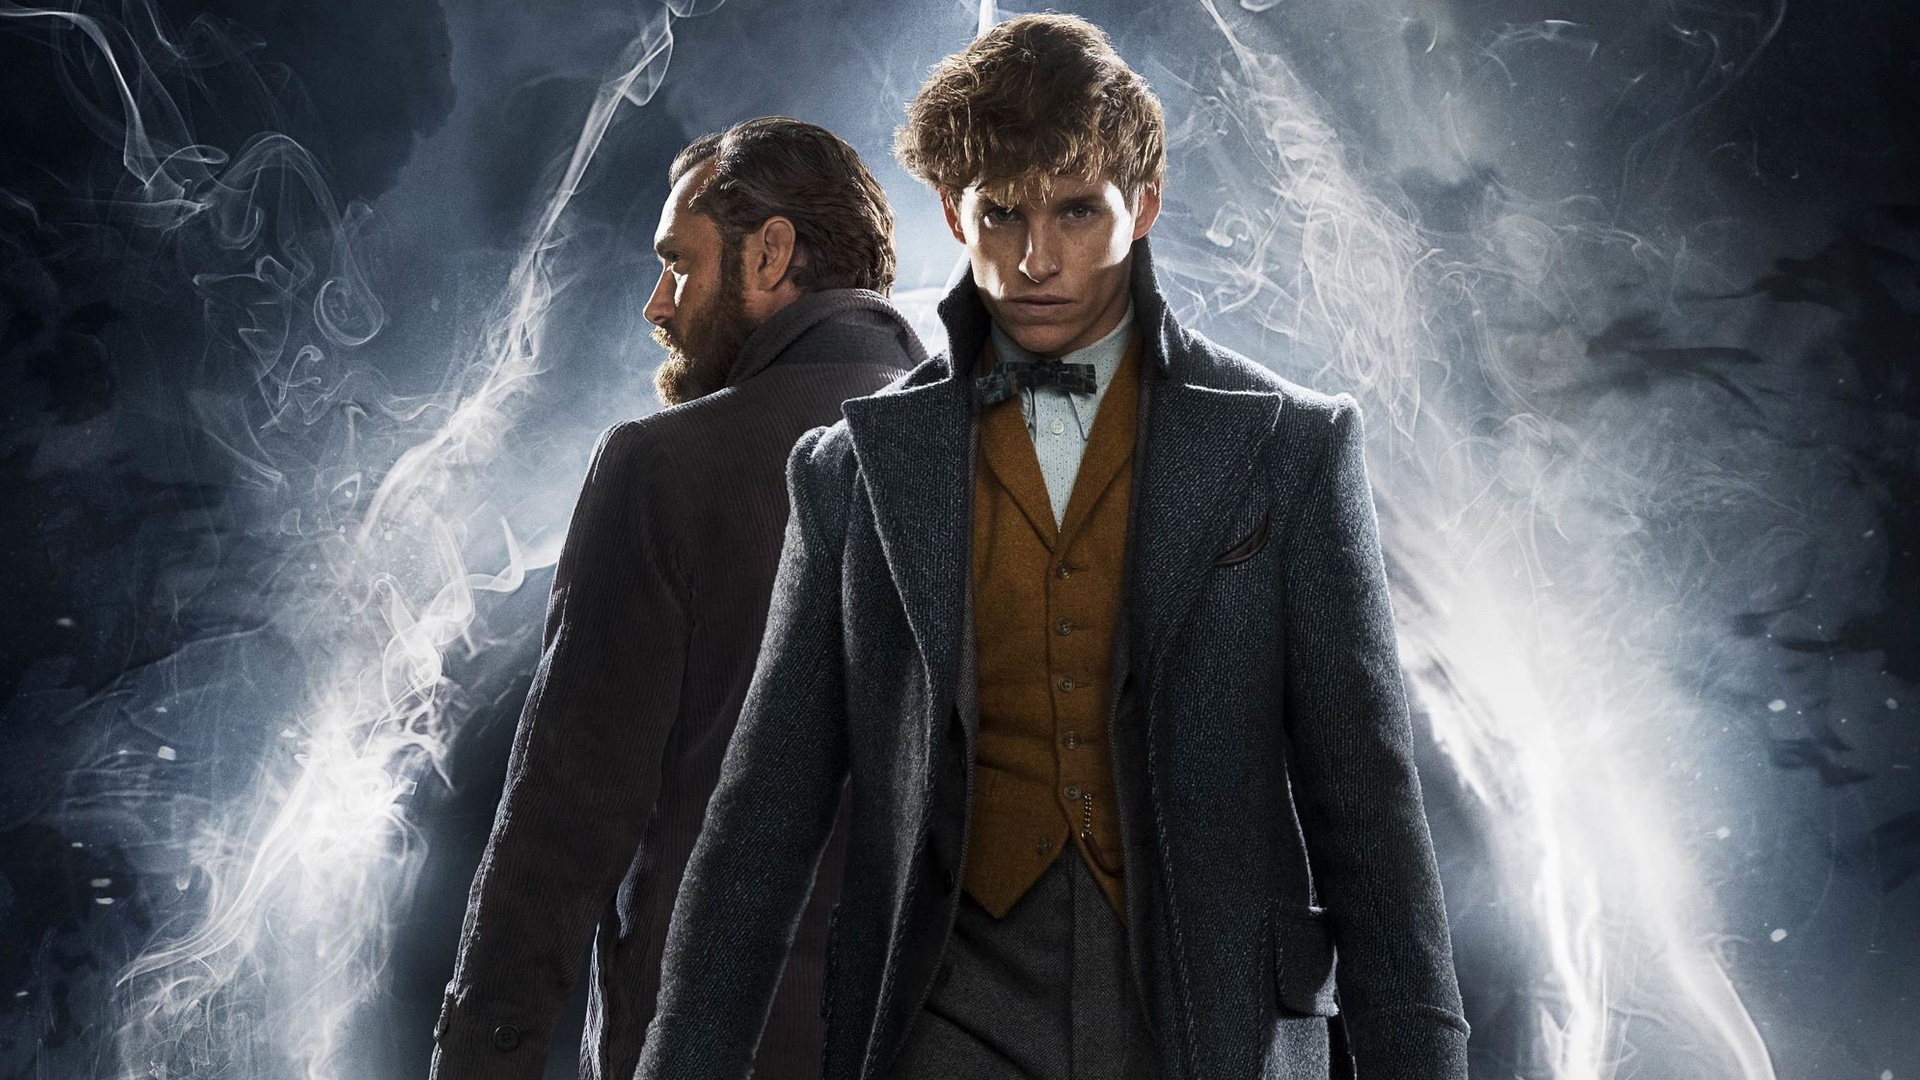 New FANTASTIC BEASTS 2 Featurette Highlights The HARRY POTTER 1920x1080